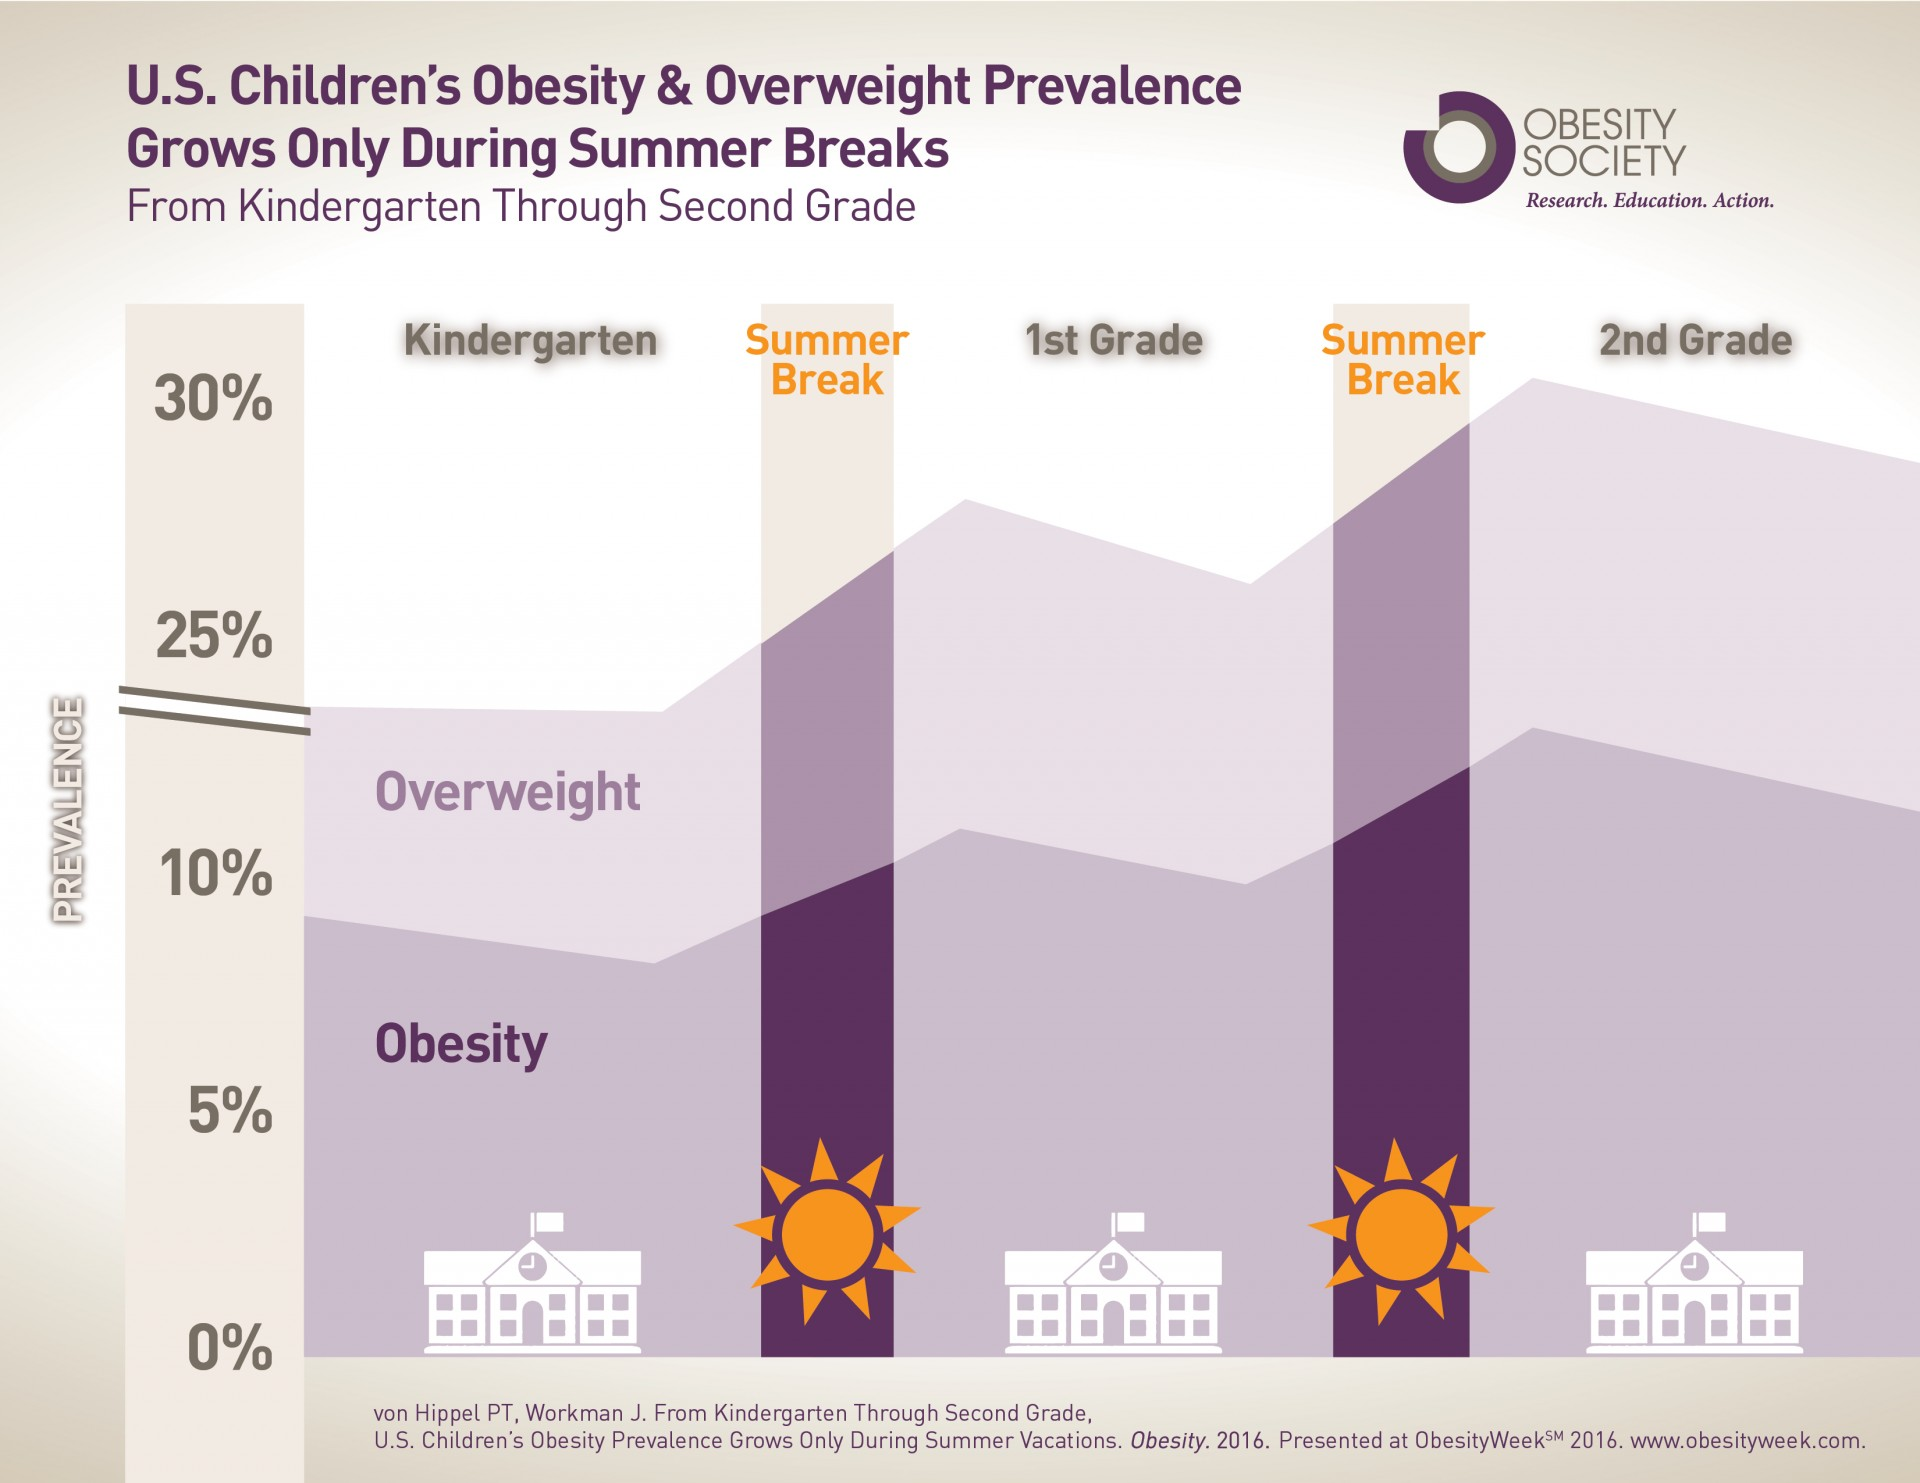 014 Summerweightgainfinal2016 Childhood Obesity Research Paper Frightening Introduction 1920